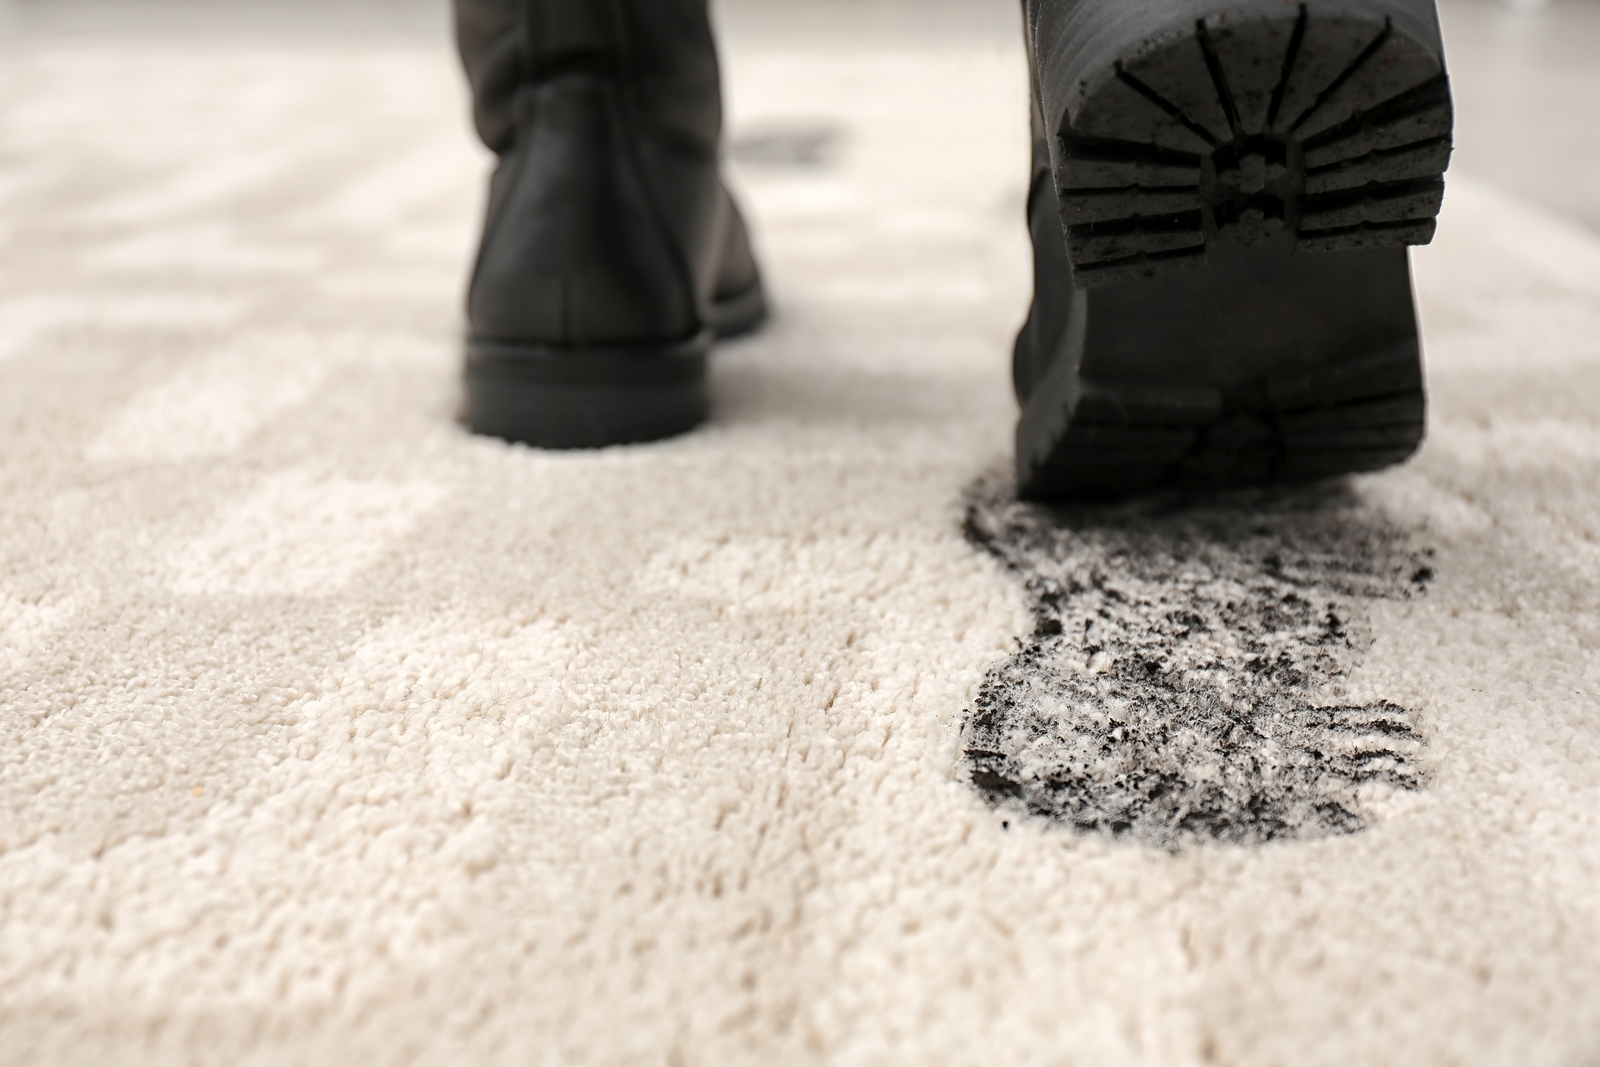 Professional Carpet Cleaning - Is it on Your Spring Cleaning Checklist?